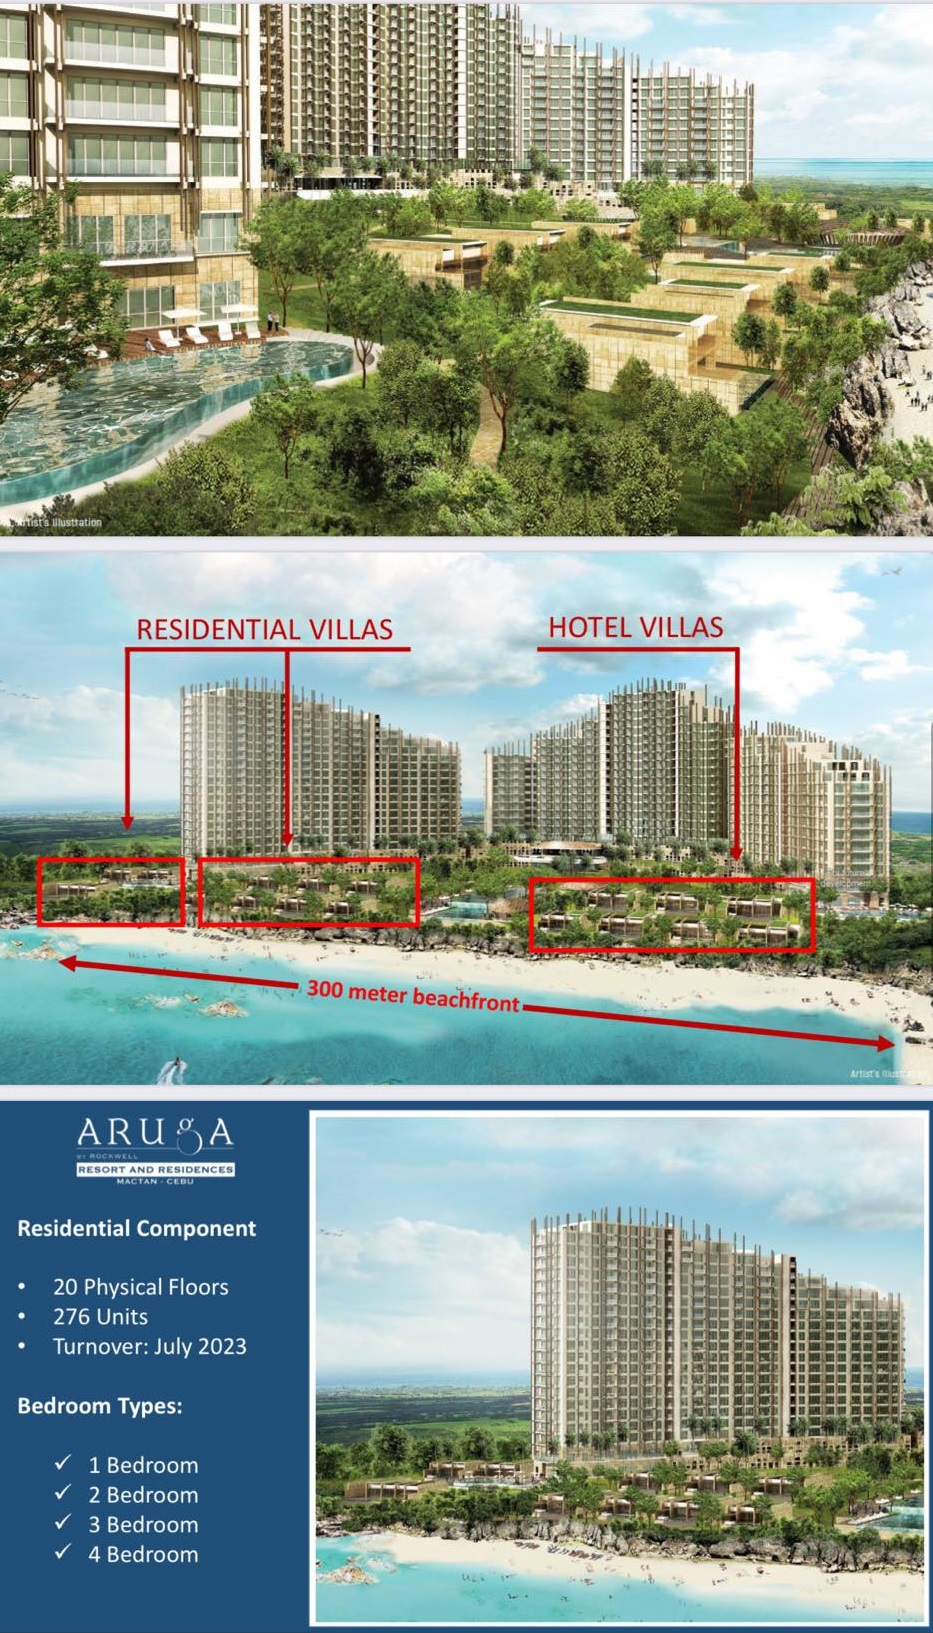 ARUGA RESORT & RESIDENCES IN MACTAN